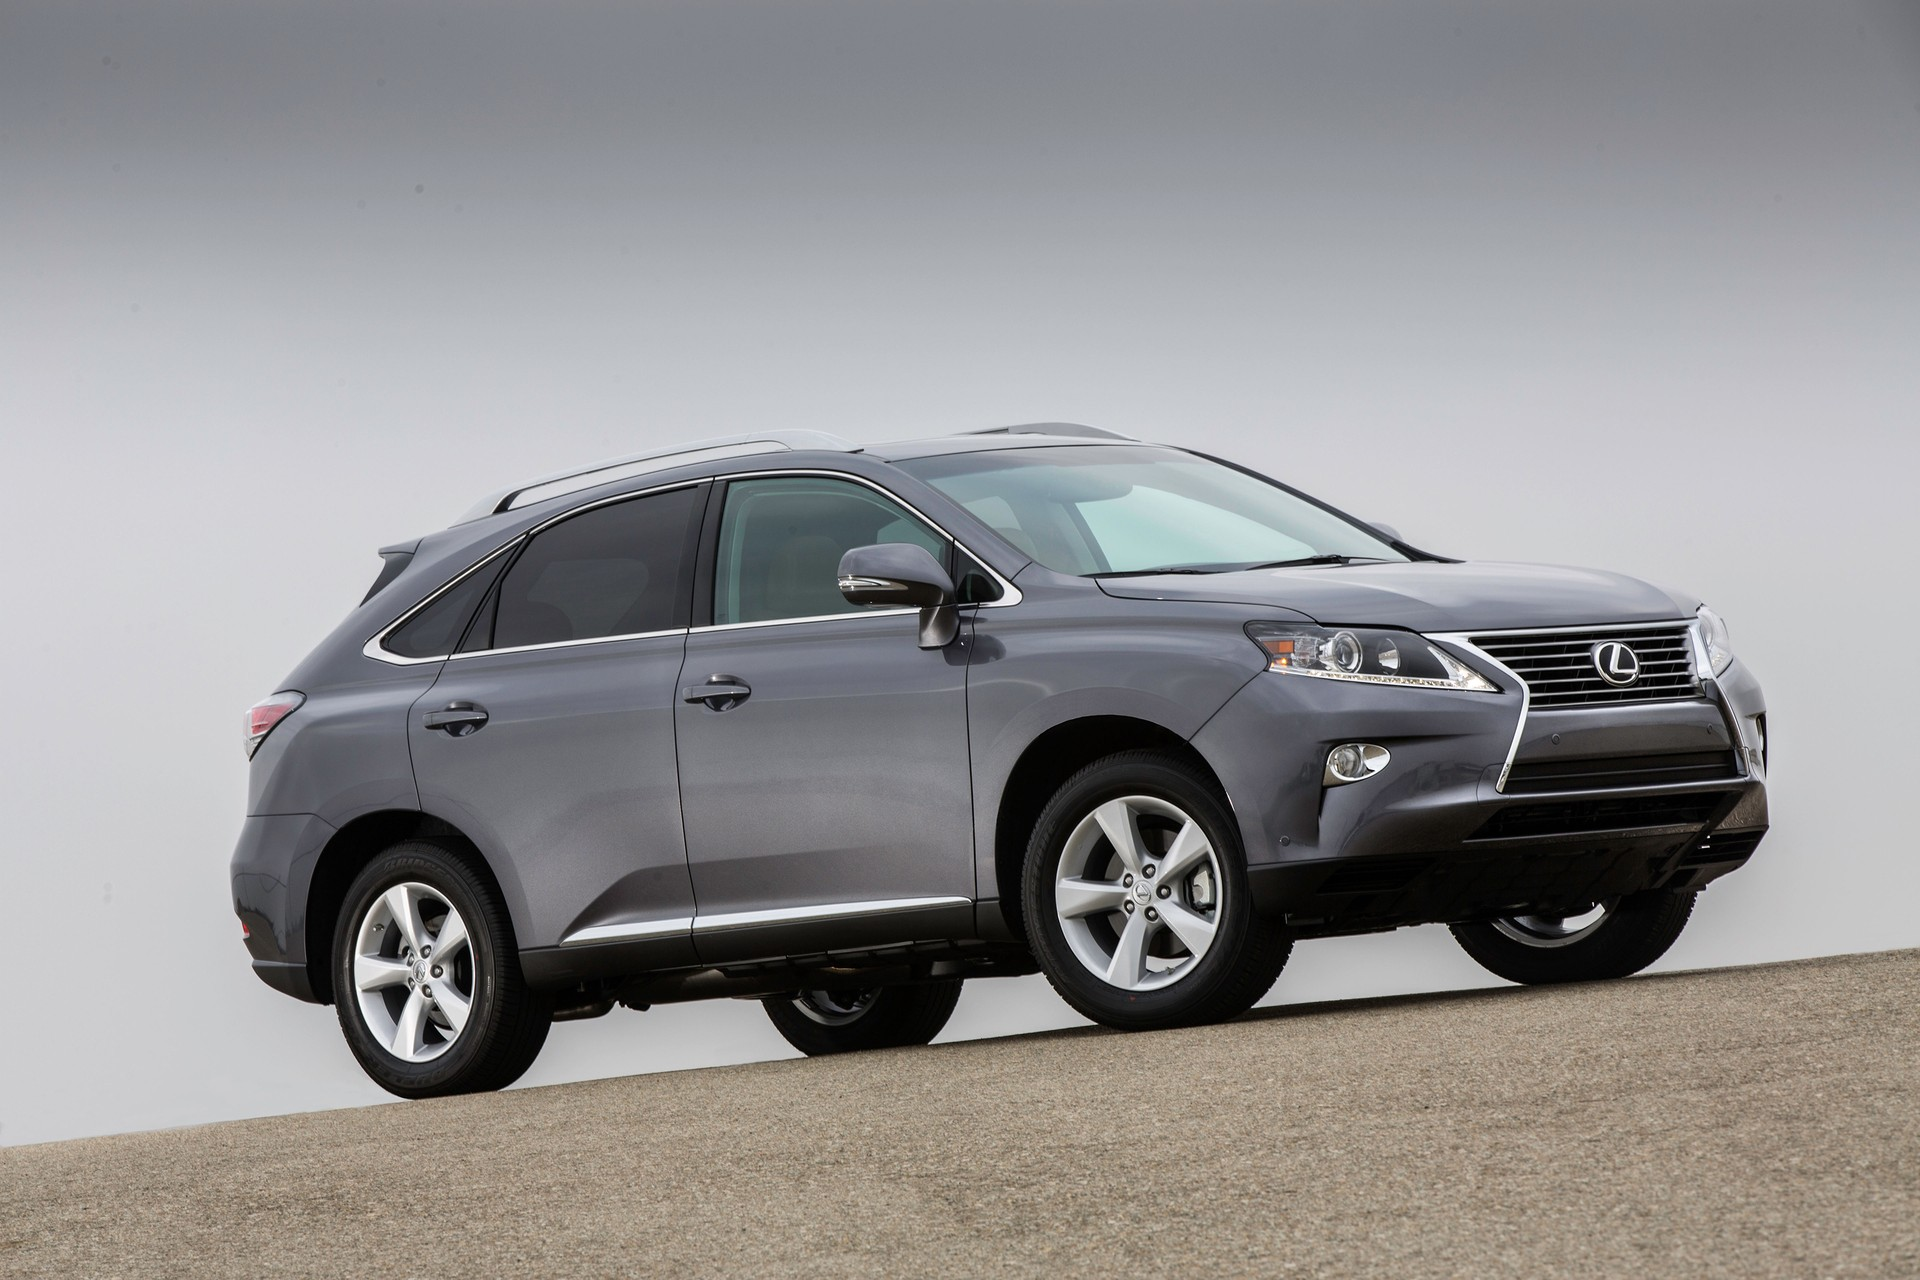 2016 lexus rx to shed weight with aluminum. Black Bedroom Furniture Sets. Home Design Ideas